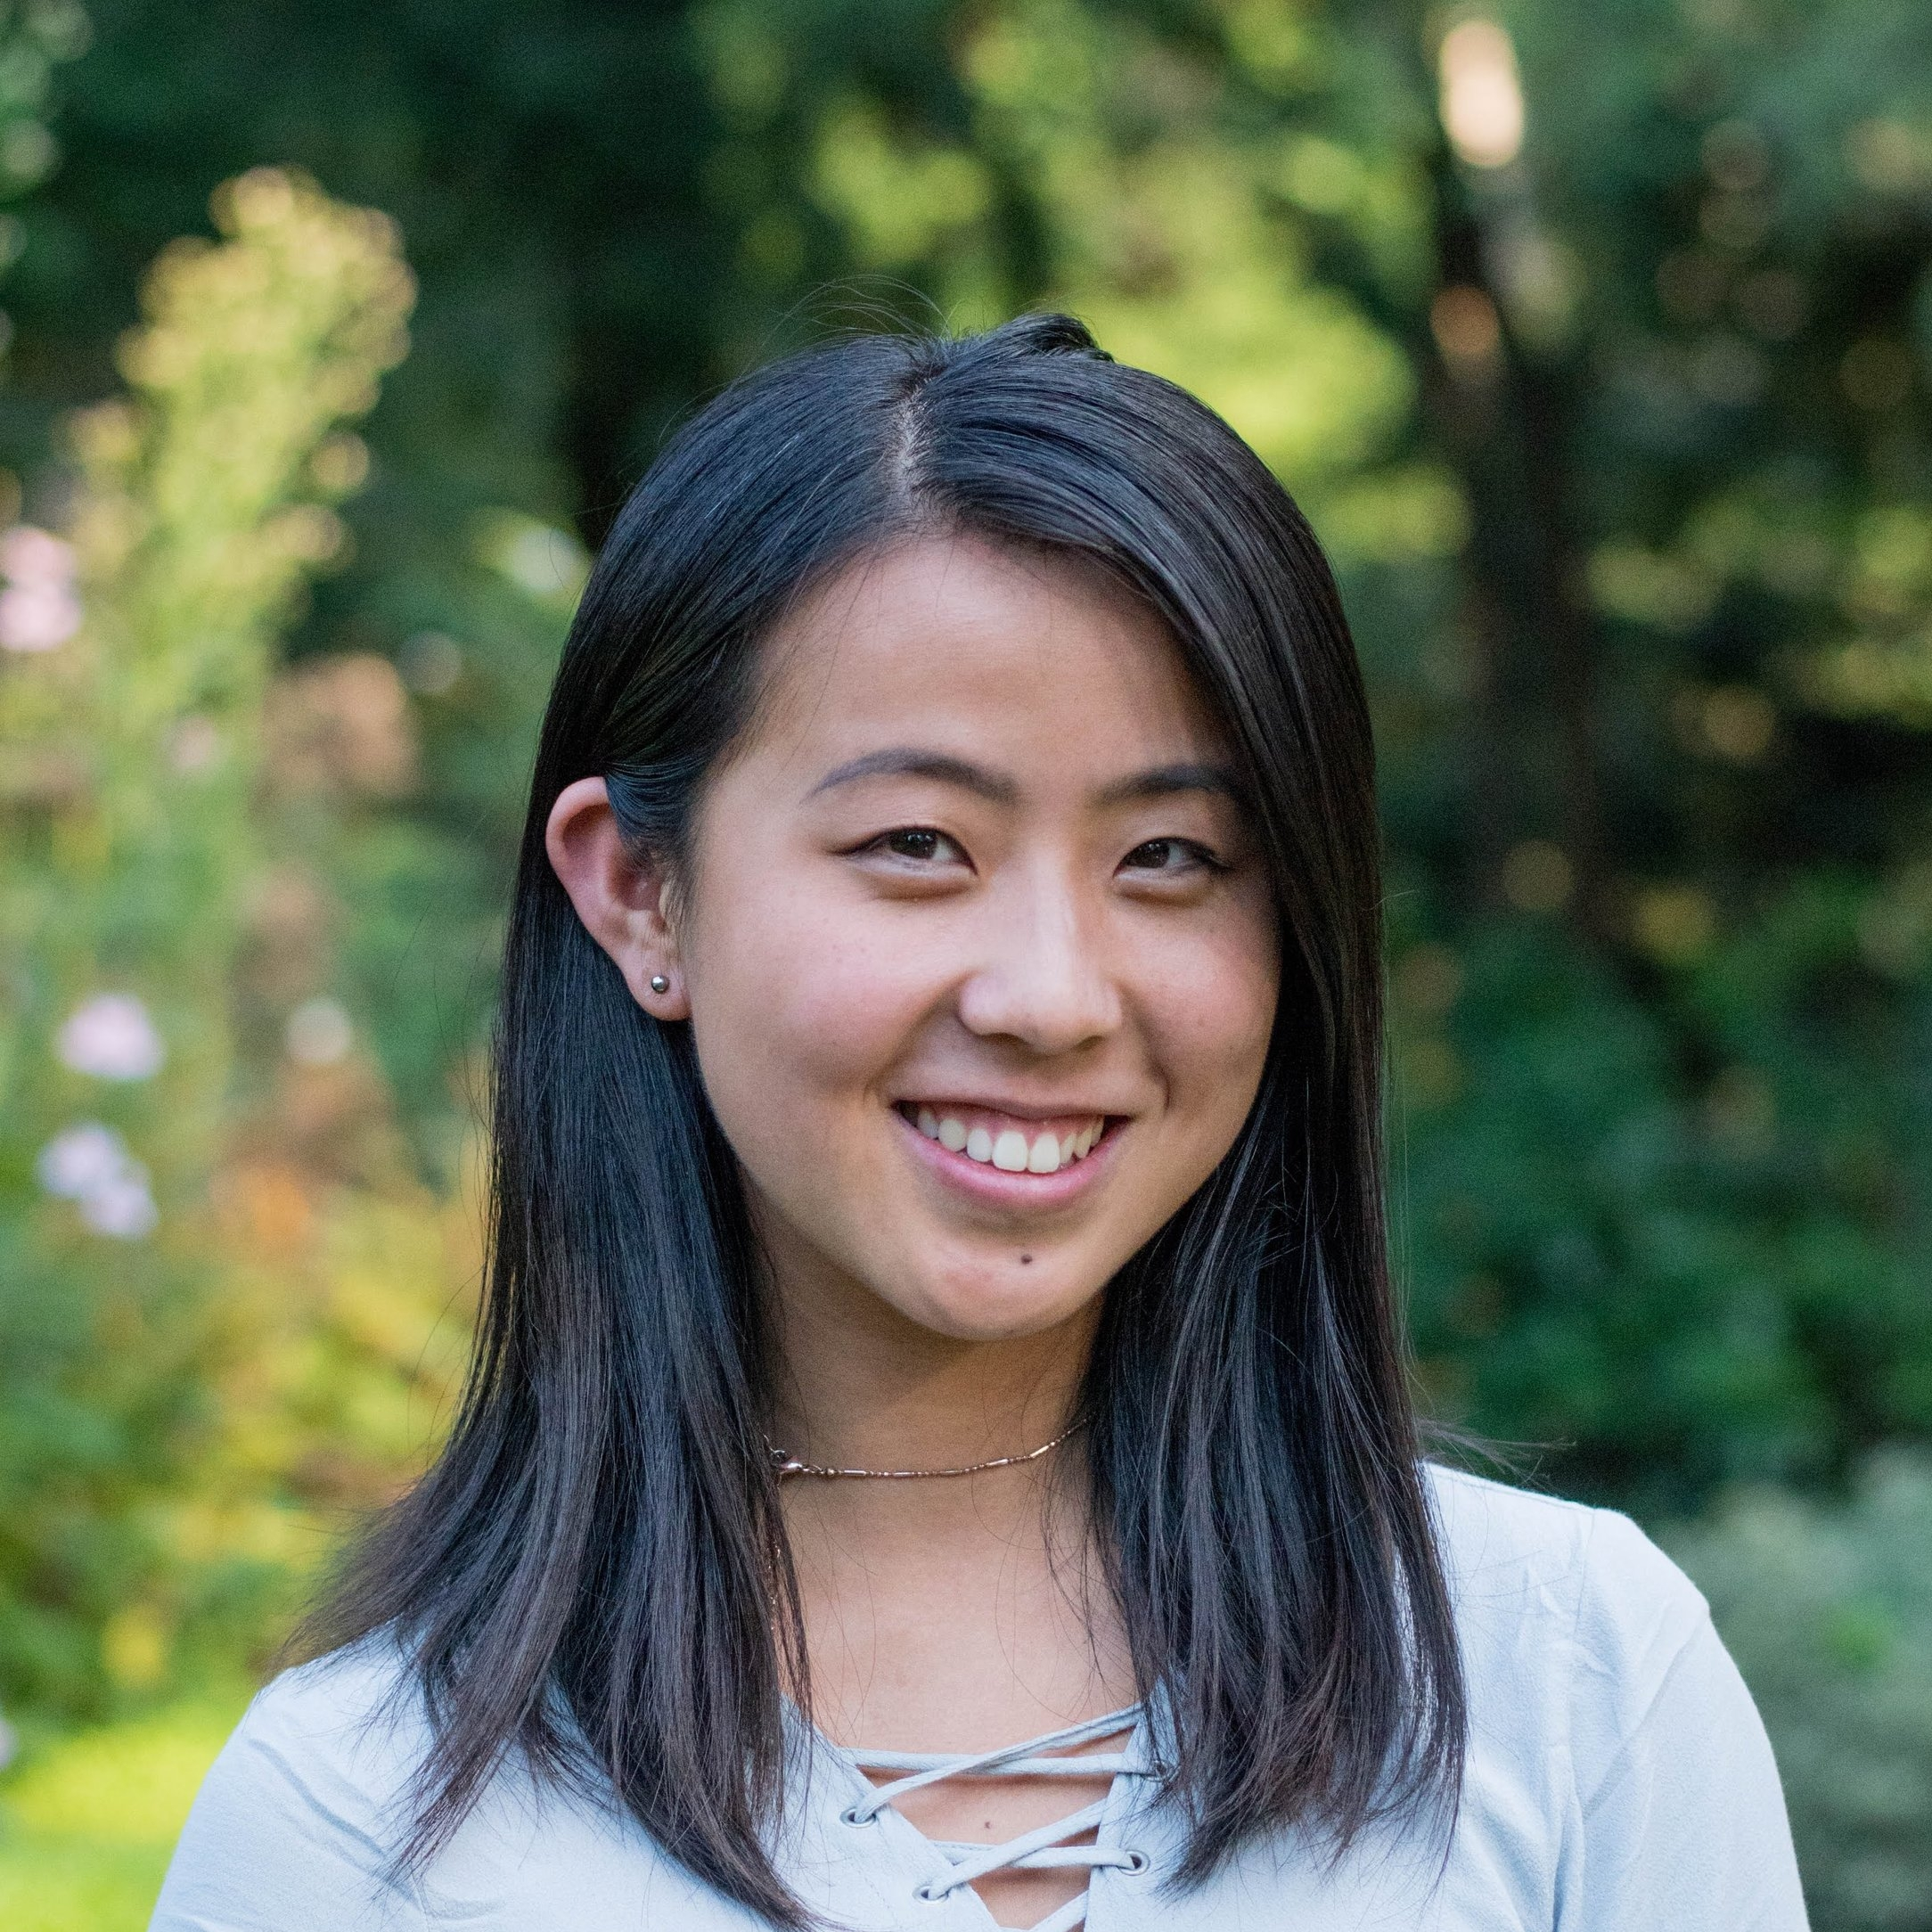 Alyssa Cai '20    Alyssa is a freshman from Jackson, New Jersey (AKA Six Flags Great Adventure) currently interested in doing ELE. Enjoys aesthetics, oversized sweatshirts, and tea. Despises kale chips, chemistry, and writing in complete sentences.